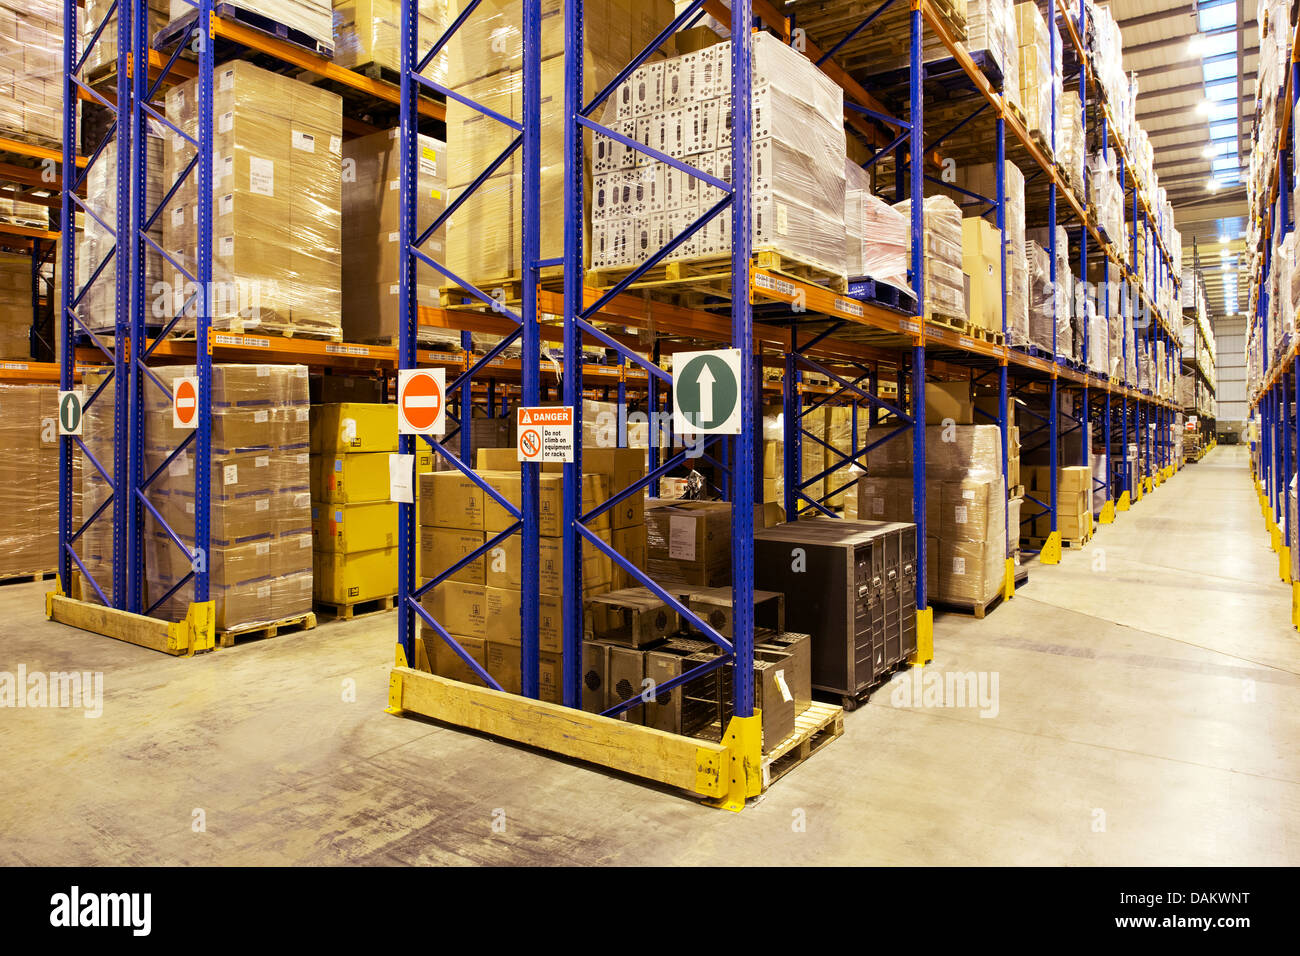 Aisles of boxes in warehouse - Stock Image